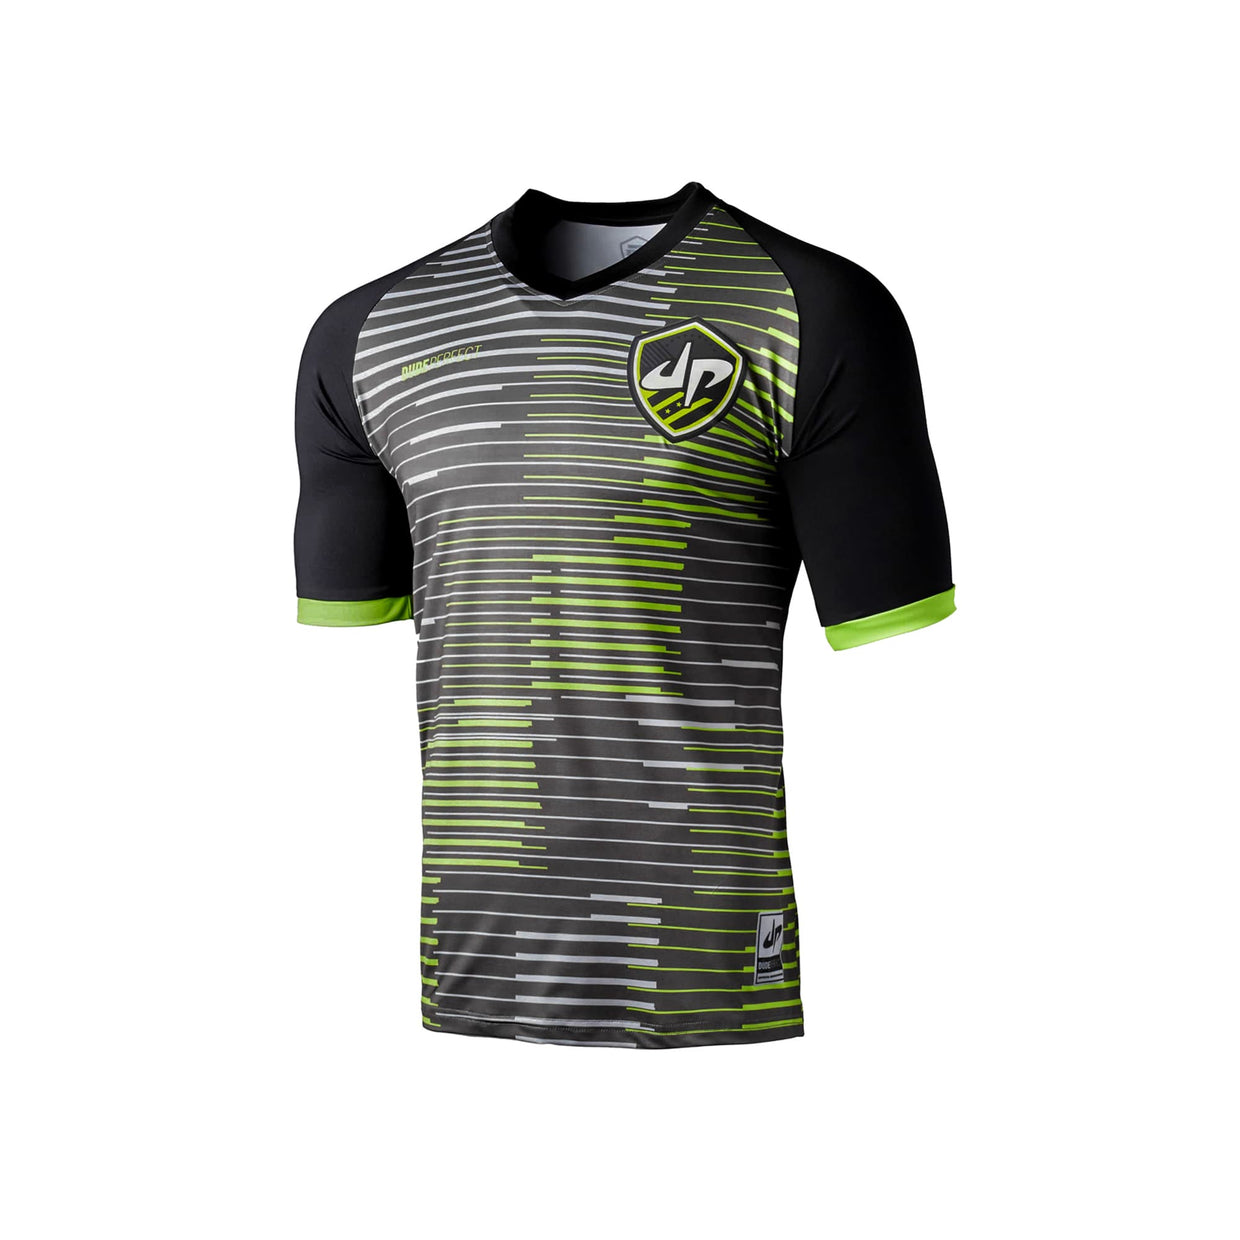 Youth Authentic Reflective Soccer Jersey